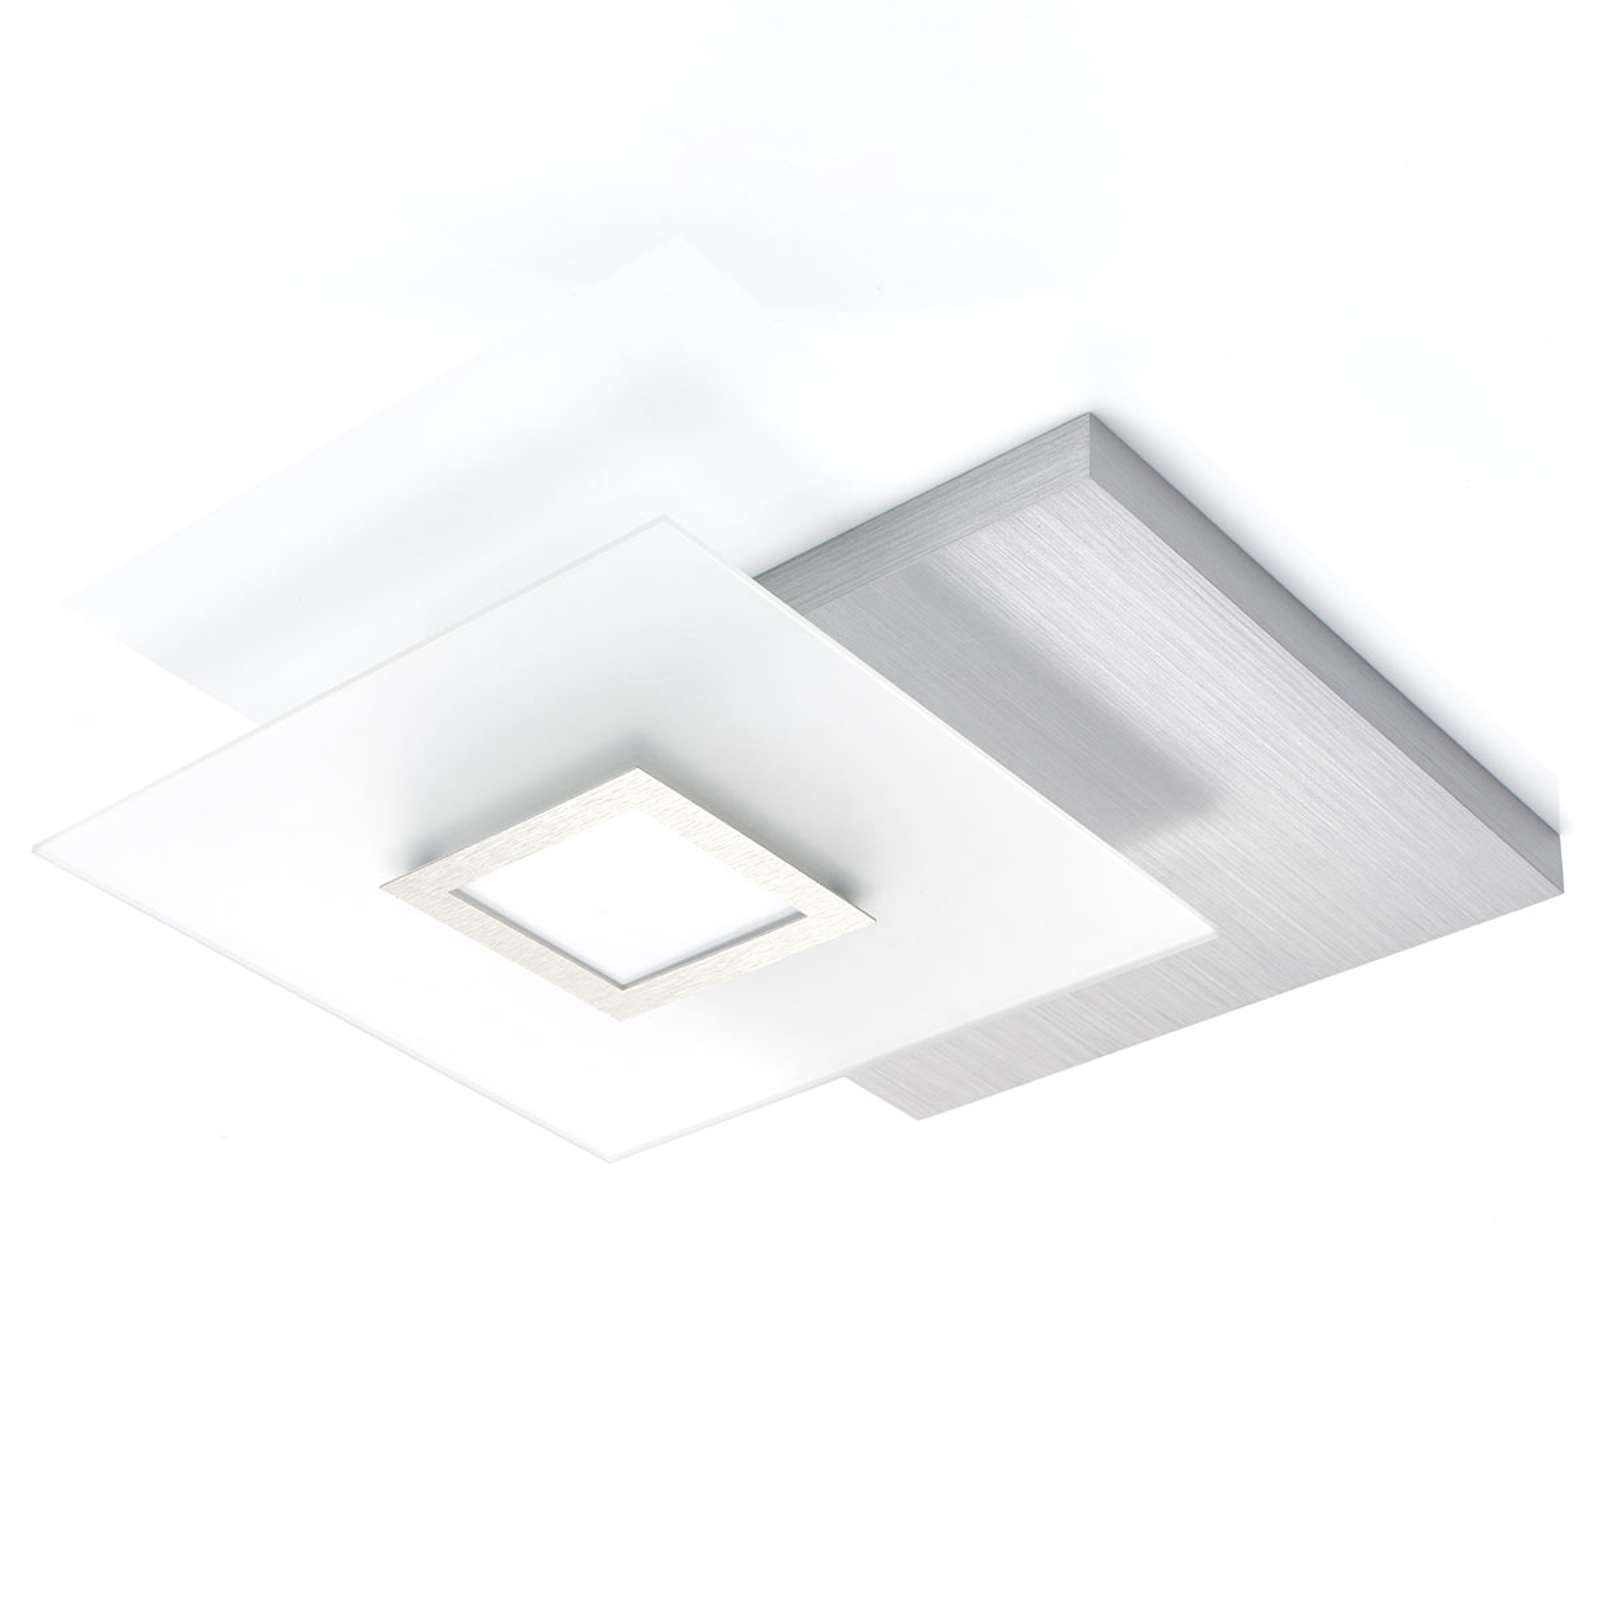 Flashy LED ceiling light Flat, dimmable_1556101_1